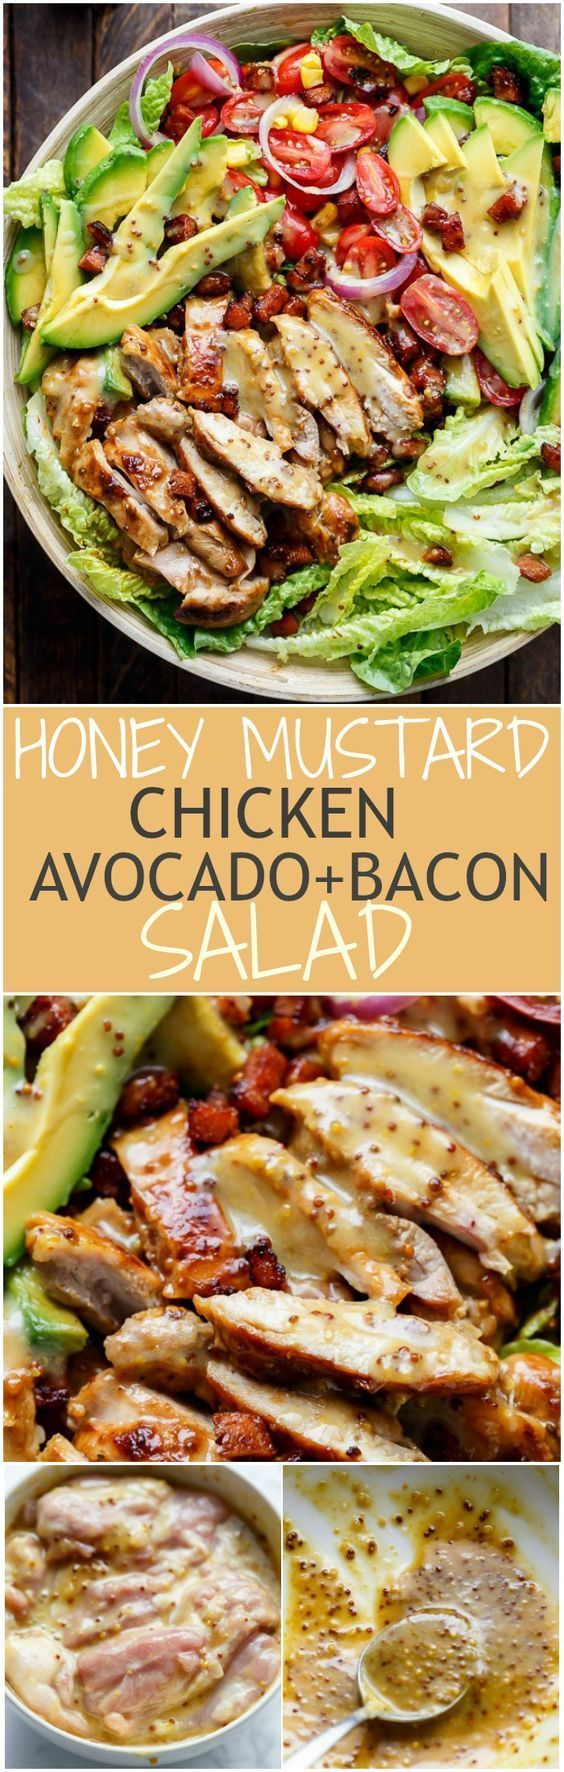 Most Pinned Salad Recipe on Pinterest 2